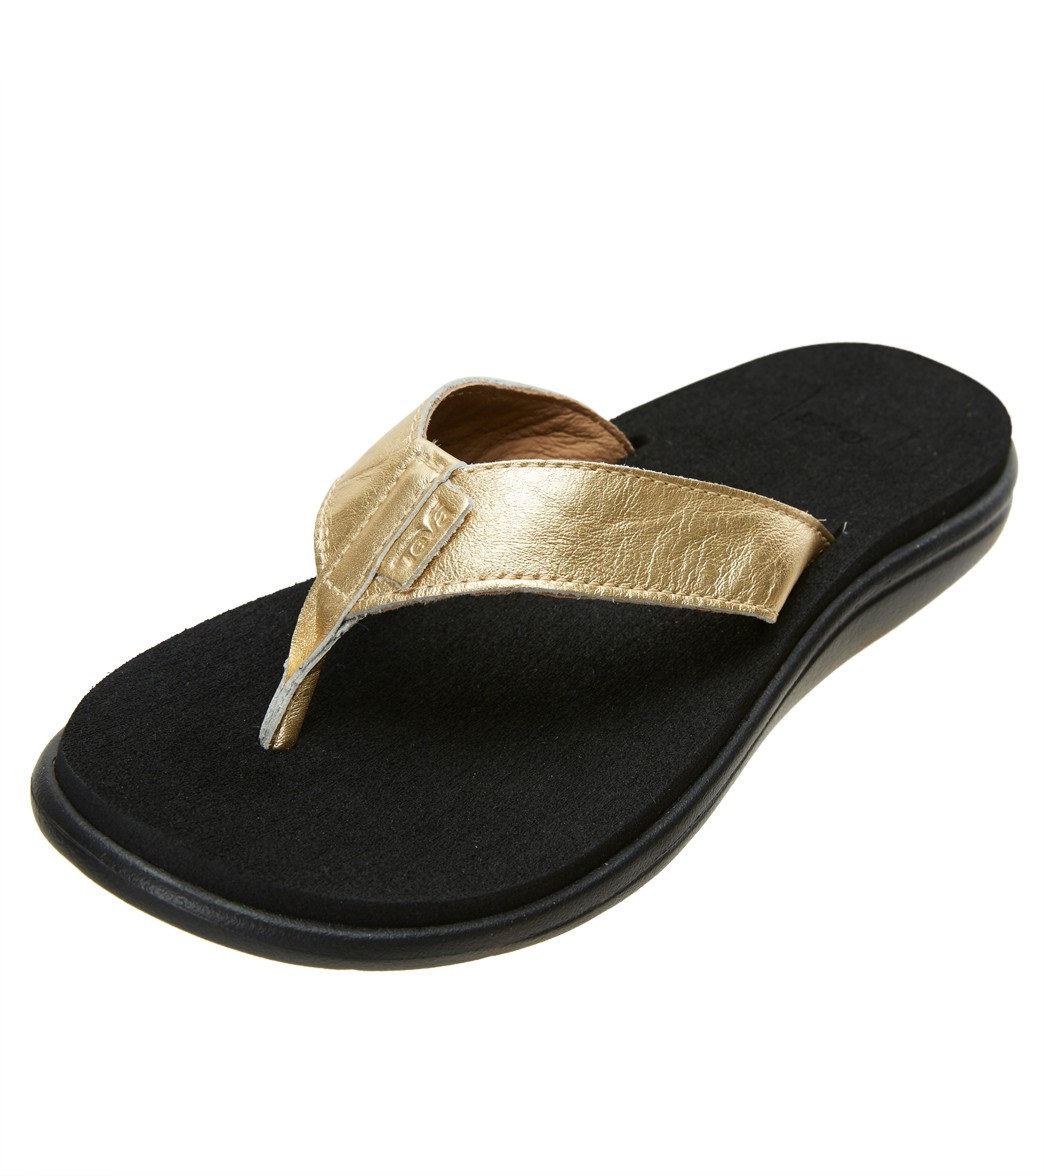 988a8a0f7 Teva Voya Flip Metallic Sandal at SwimOutlet.com